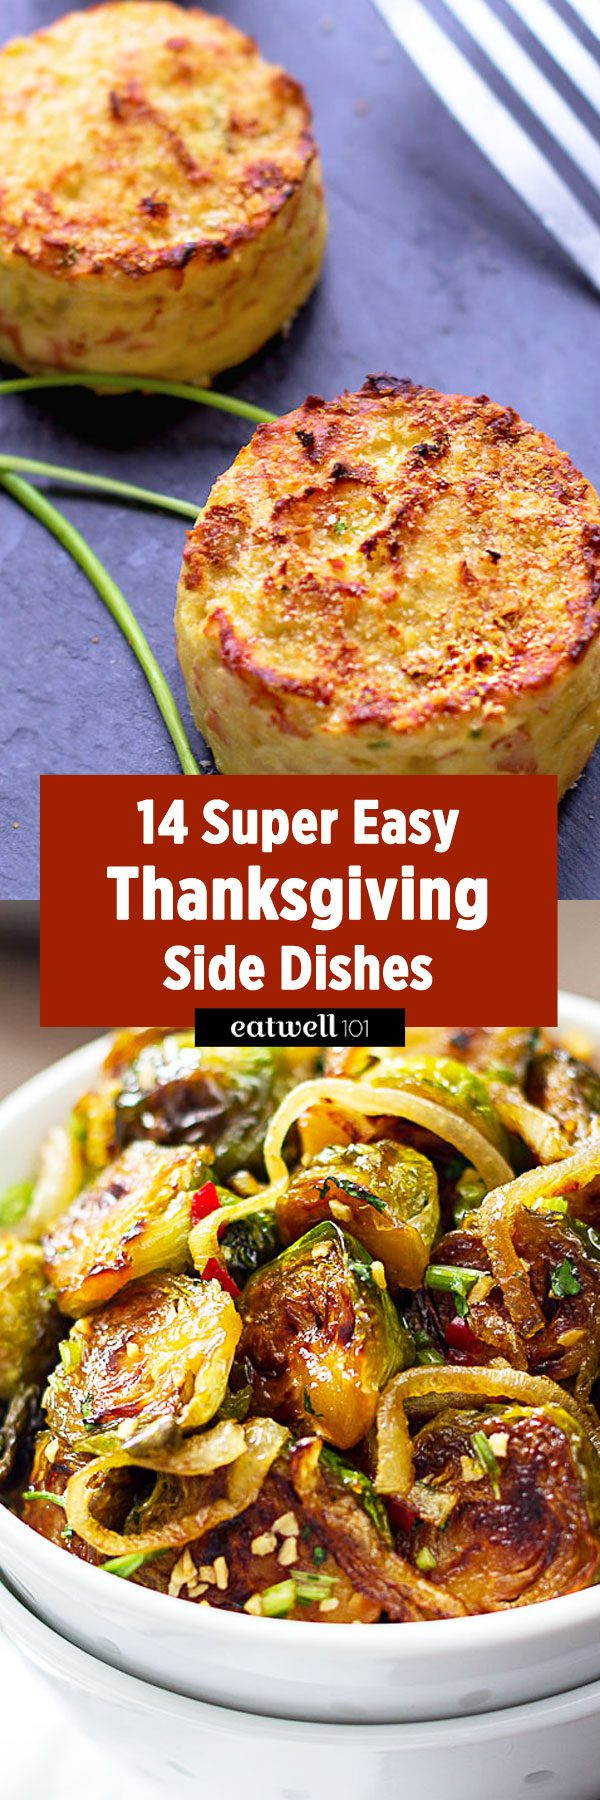 Thanksgiving Side Dishes Easy  Up Your Thanksgiving With These Super Easy Side Dishes